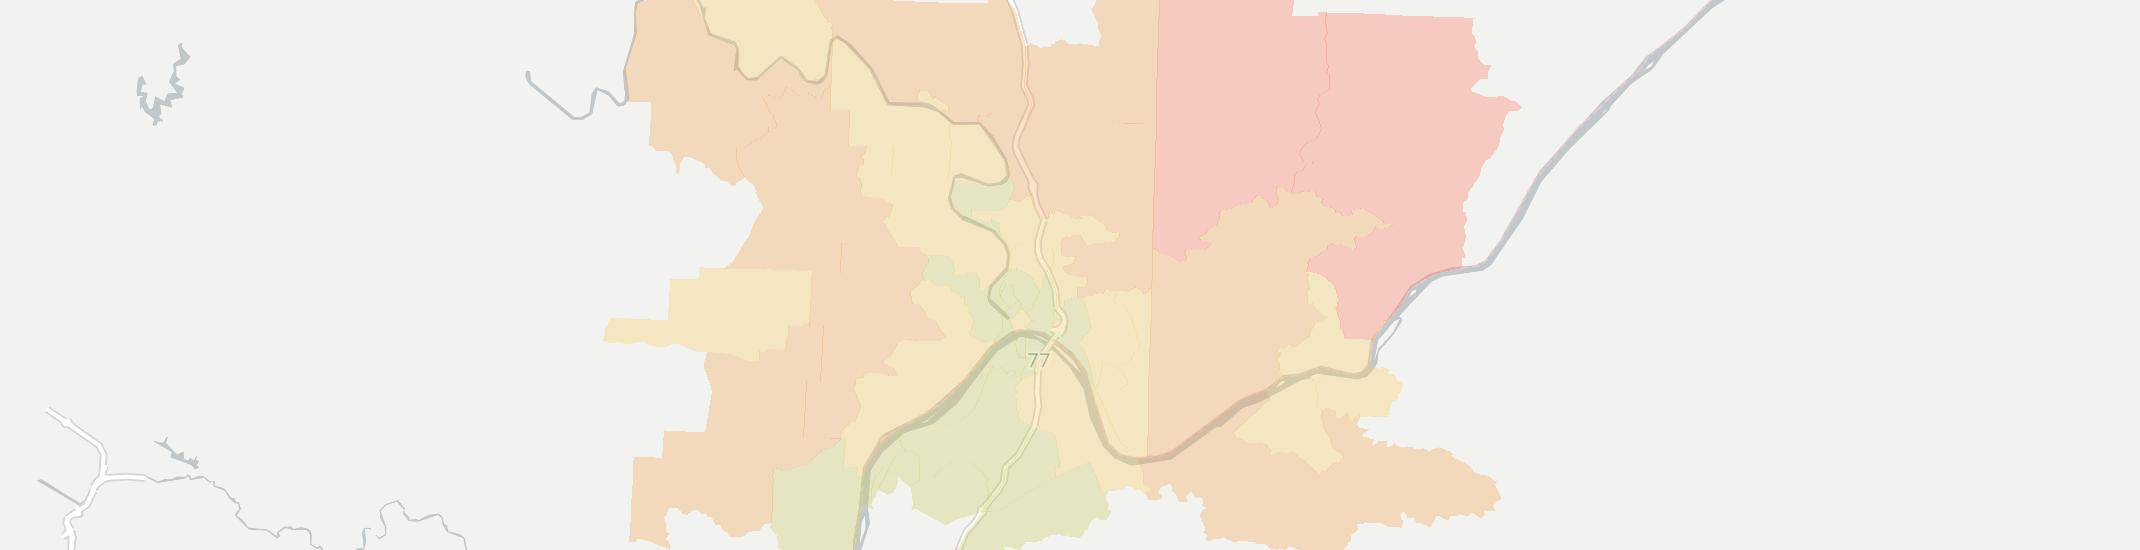 Marietta Internet Competition Map. Click for interactive map.